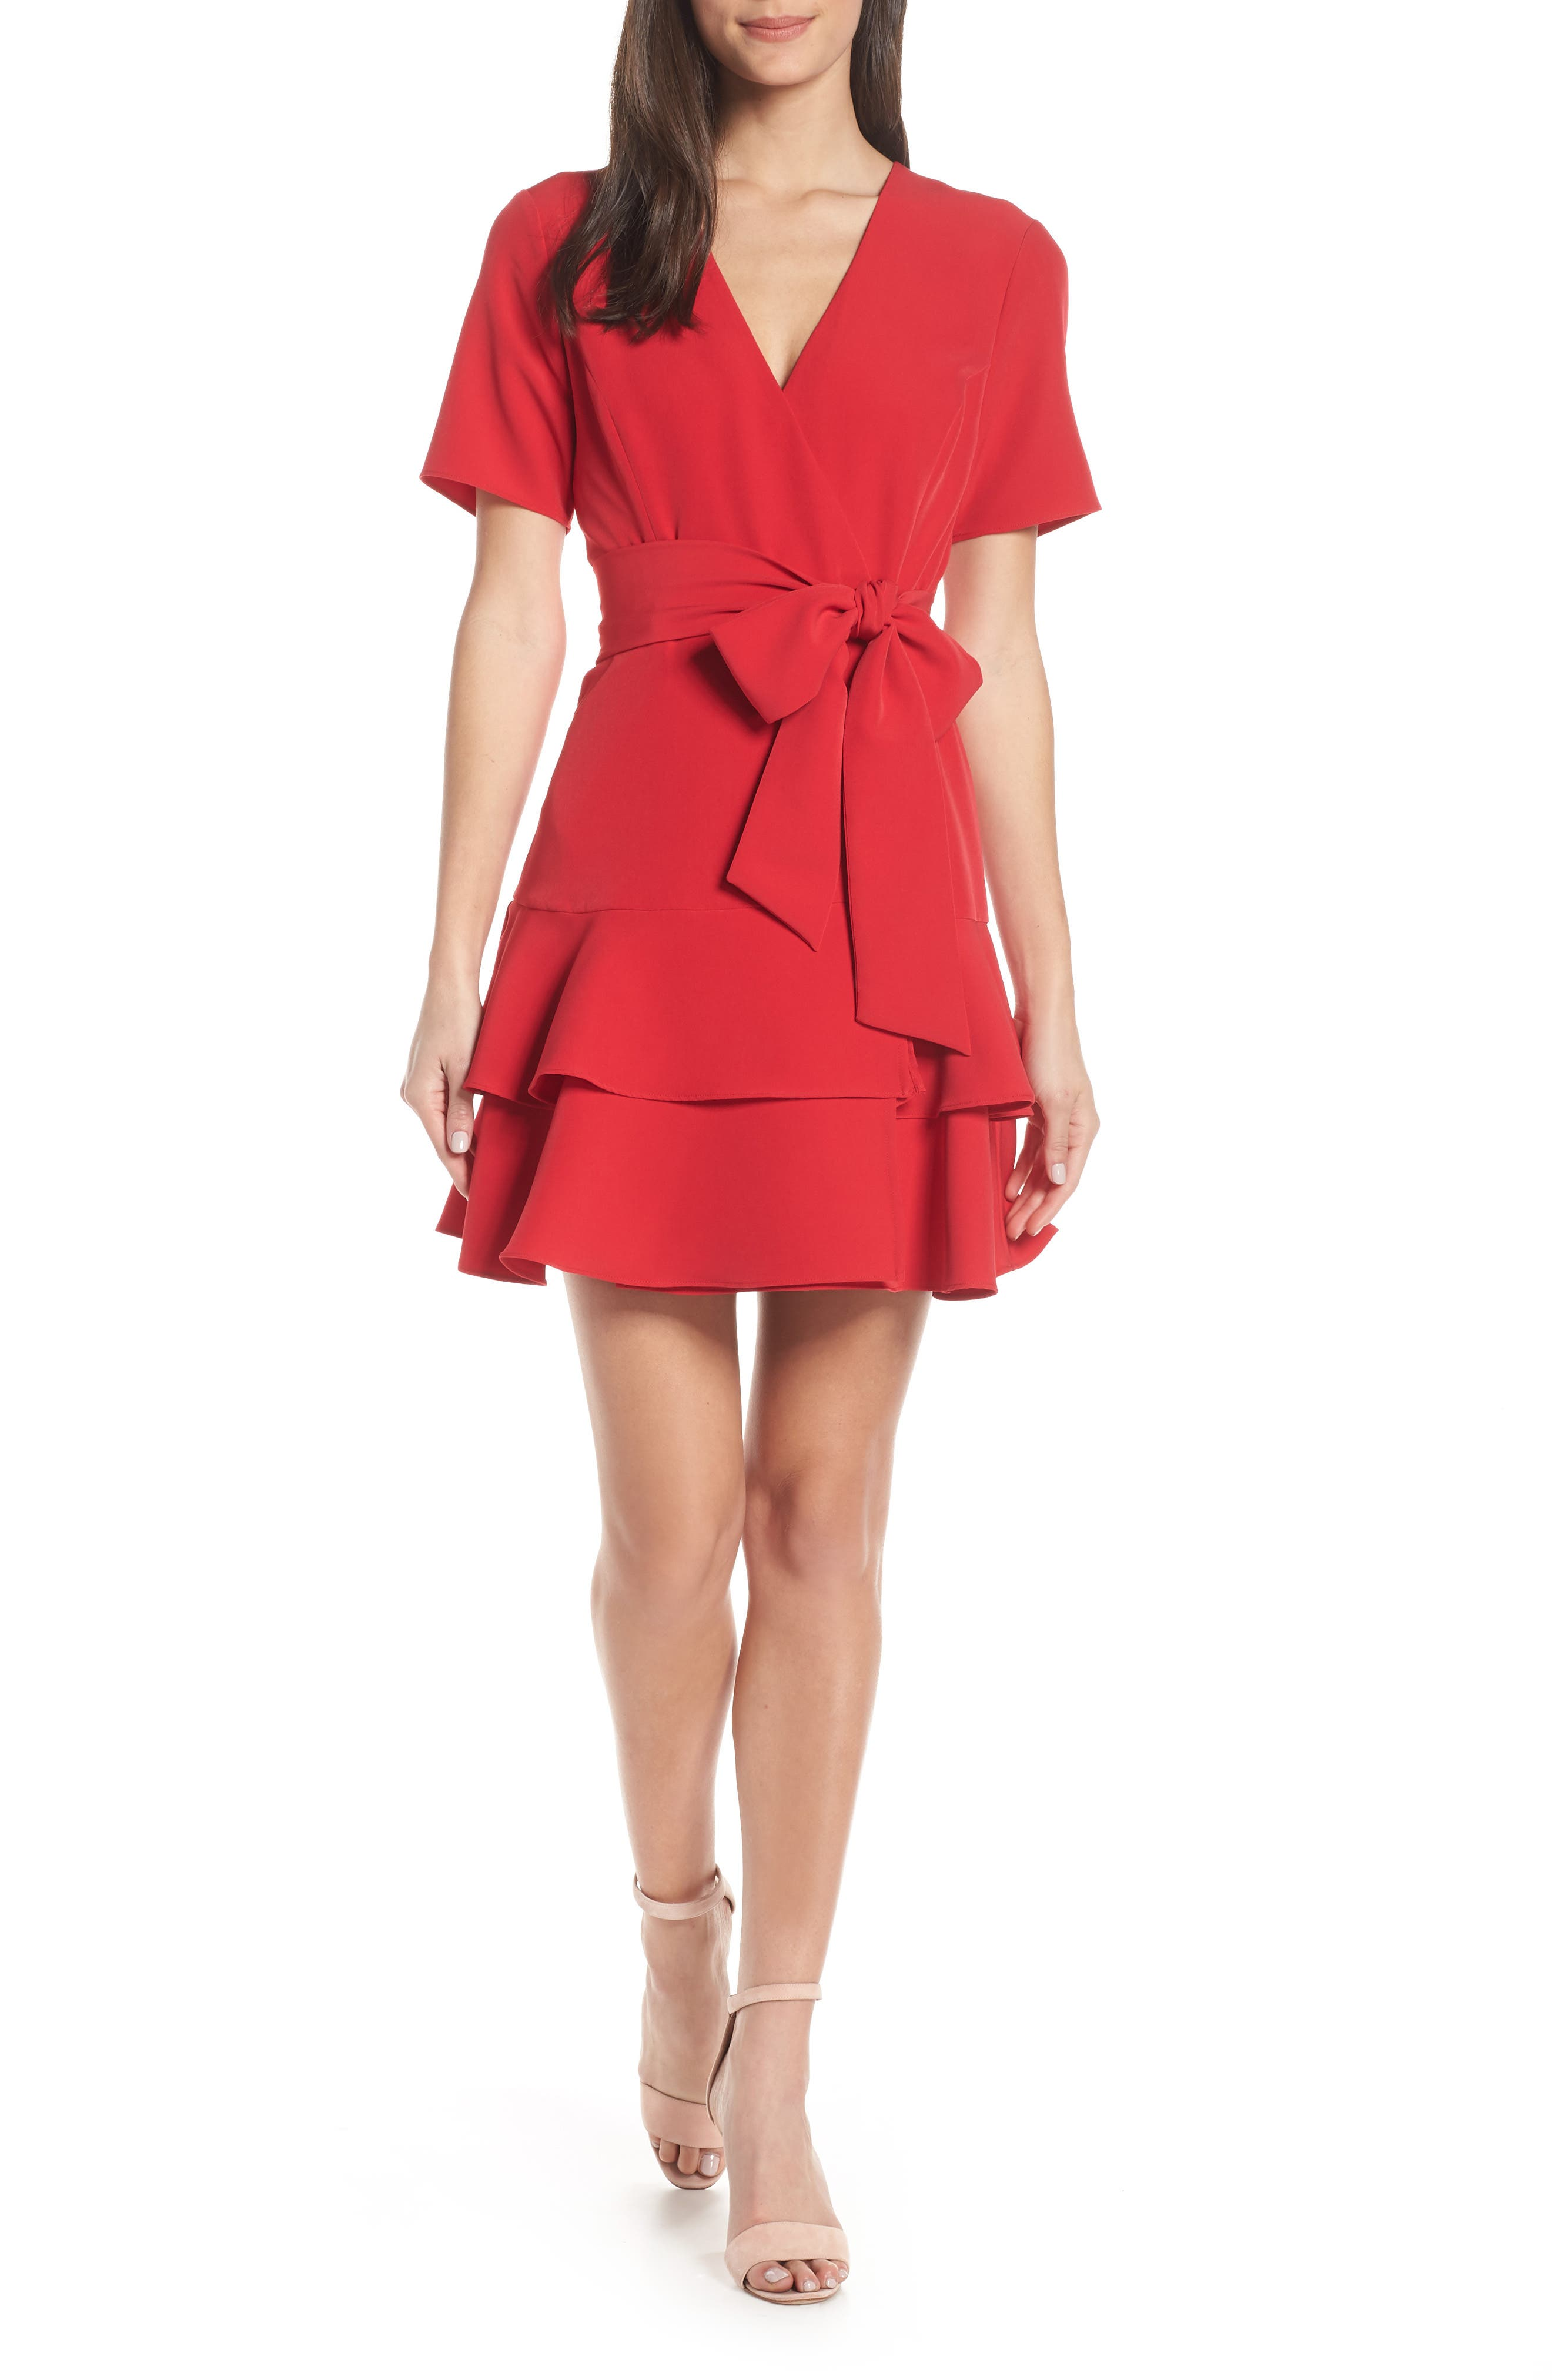 CHARLES HENRY, Ruffle Tiered Wrap Dress, Main thumbnail 1, color, SCARLET